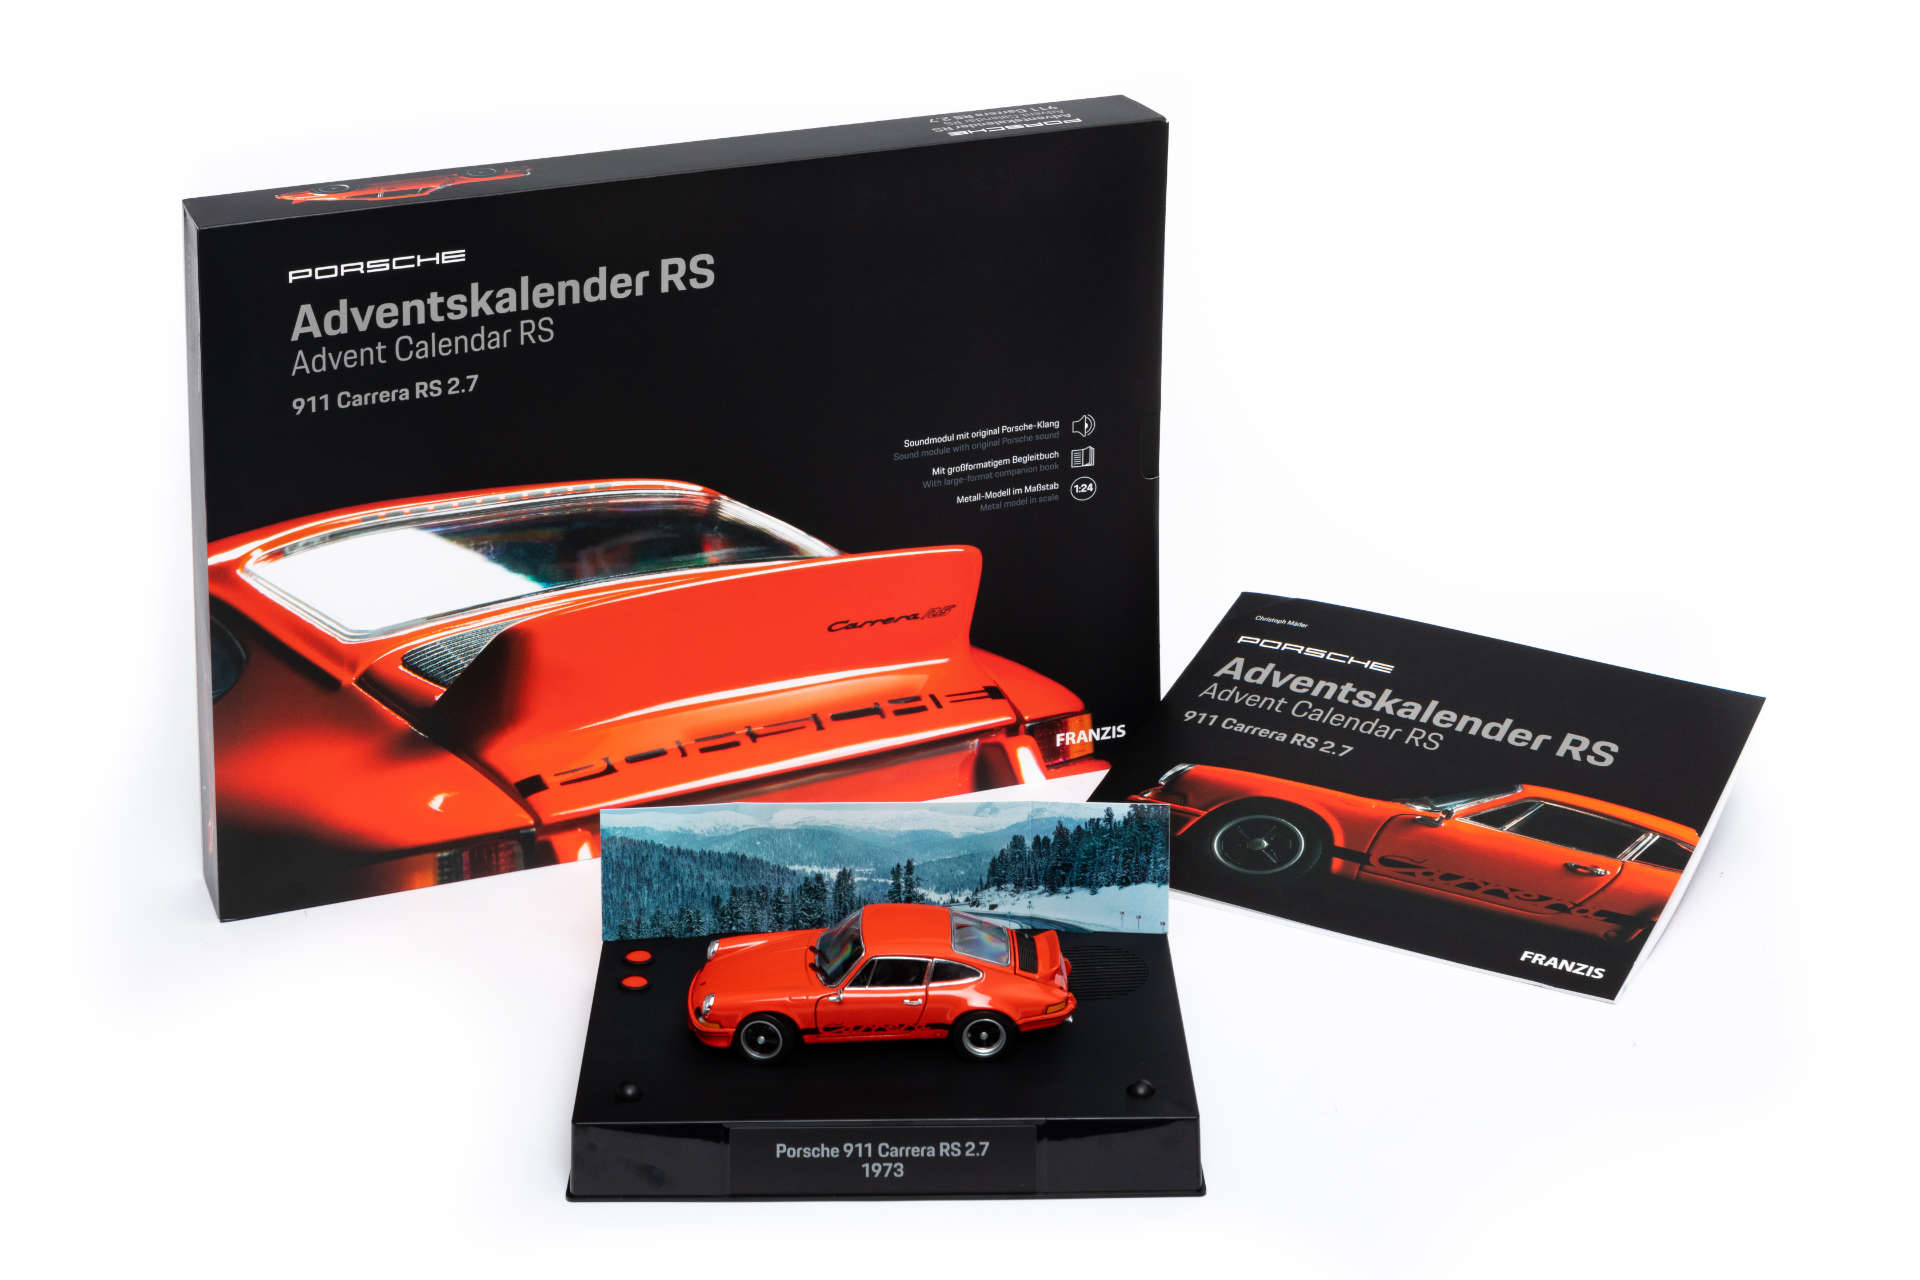 Franzis Adventskalender Porsche 911 Carrera RS